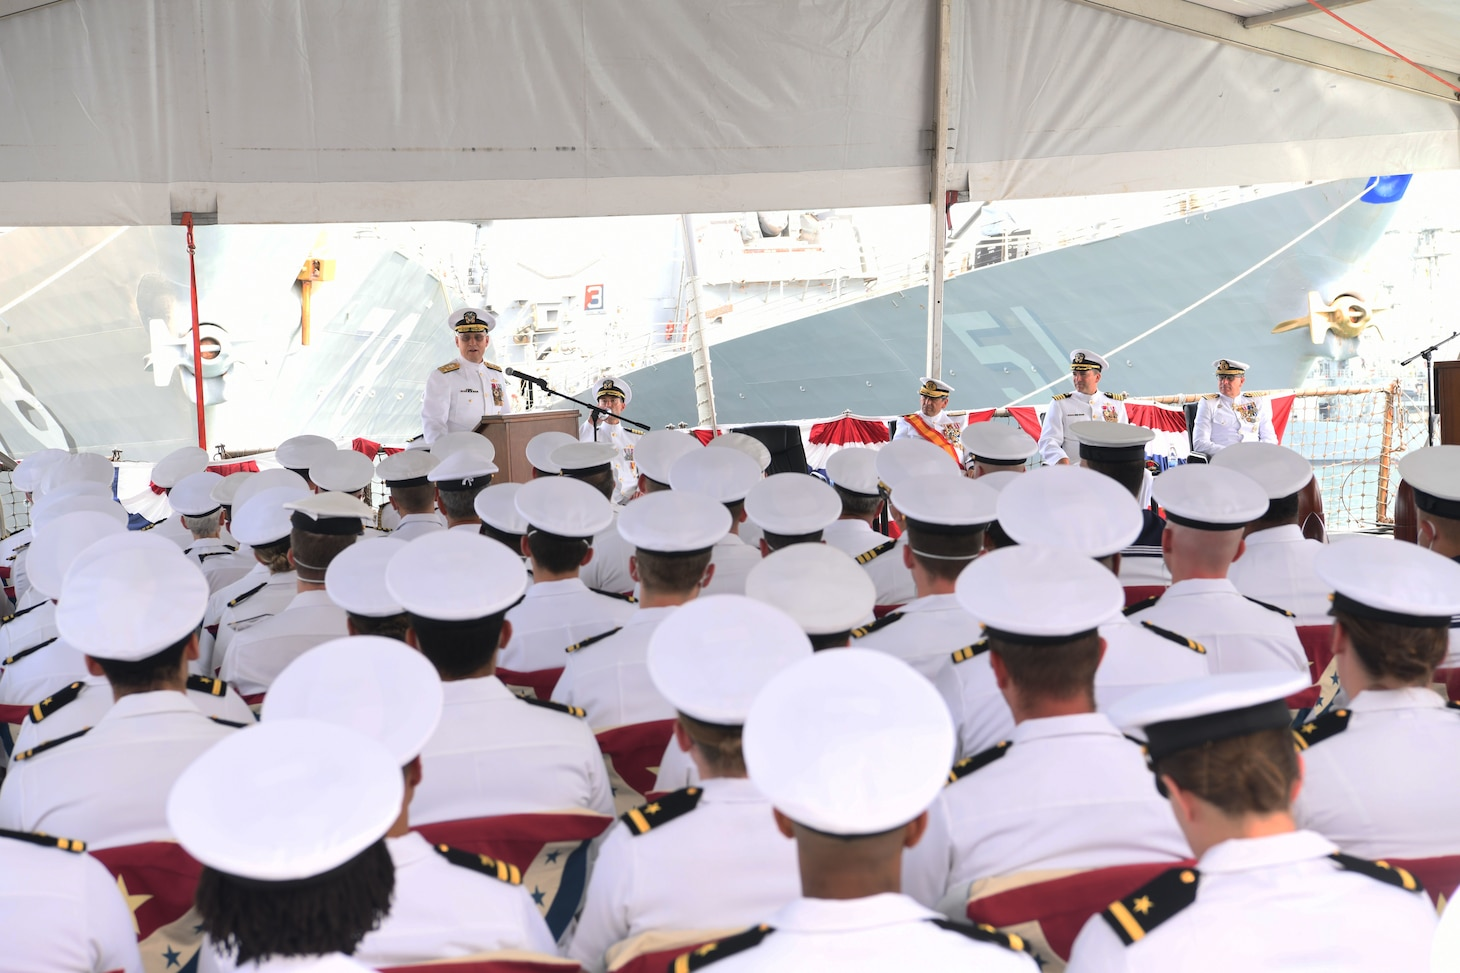 Vice Adm. Gene Black, commander, U.S. Sixth Fleet speaks at the Commander, Task Force (CTF) 65 change of command ceremony at Naval Station Rota, Aug. 10, 2019. Capt. Kyle Gantt relieved Capt. Joseph Gagliano as commodore CTF 65. CTF 65 and DESRON 60, headquartered in Rota, Spain, overseas the forward-deployed forces of U.S. Sixth Fleet's area of operation in support of regional allies and partners as well as U.S. national security interests in Europe and Africa.